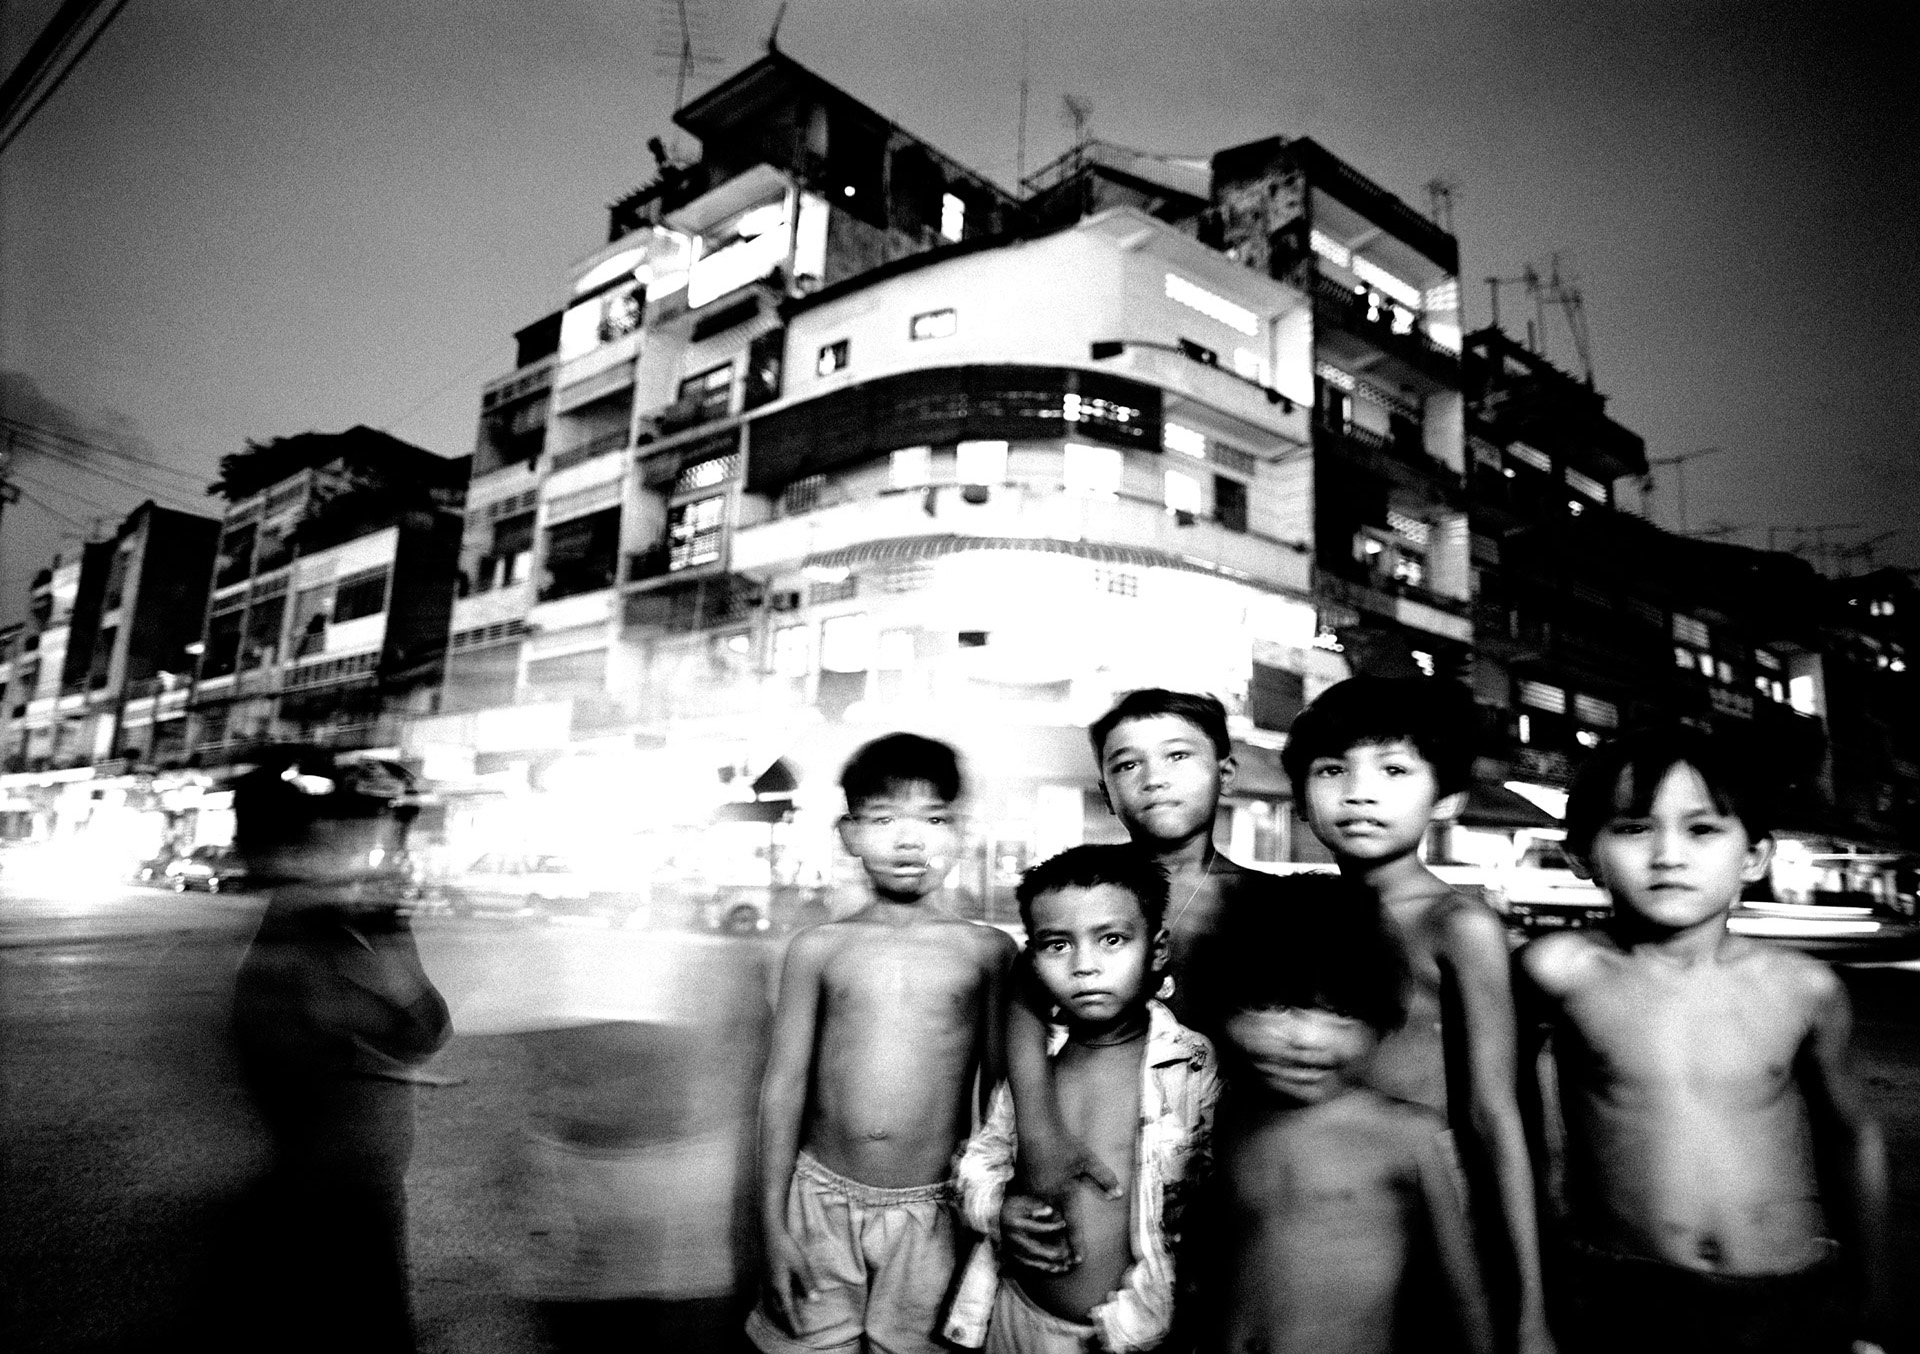 ason Florio photography - Black & White image of a group of children, on a busy night time street, Cambodia